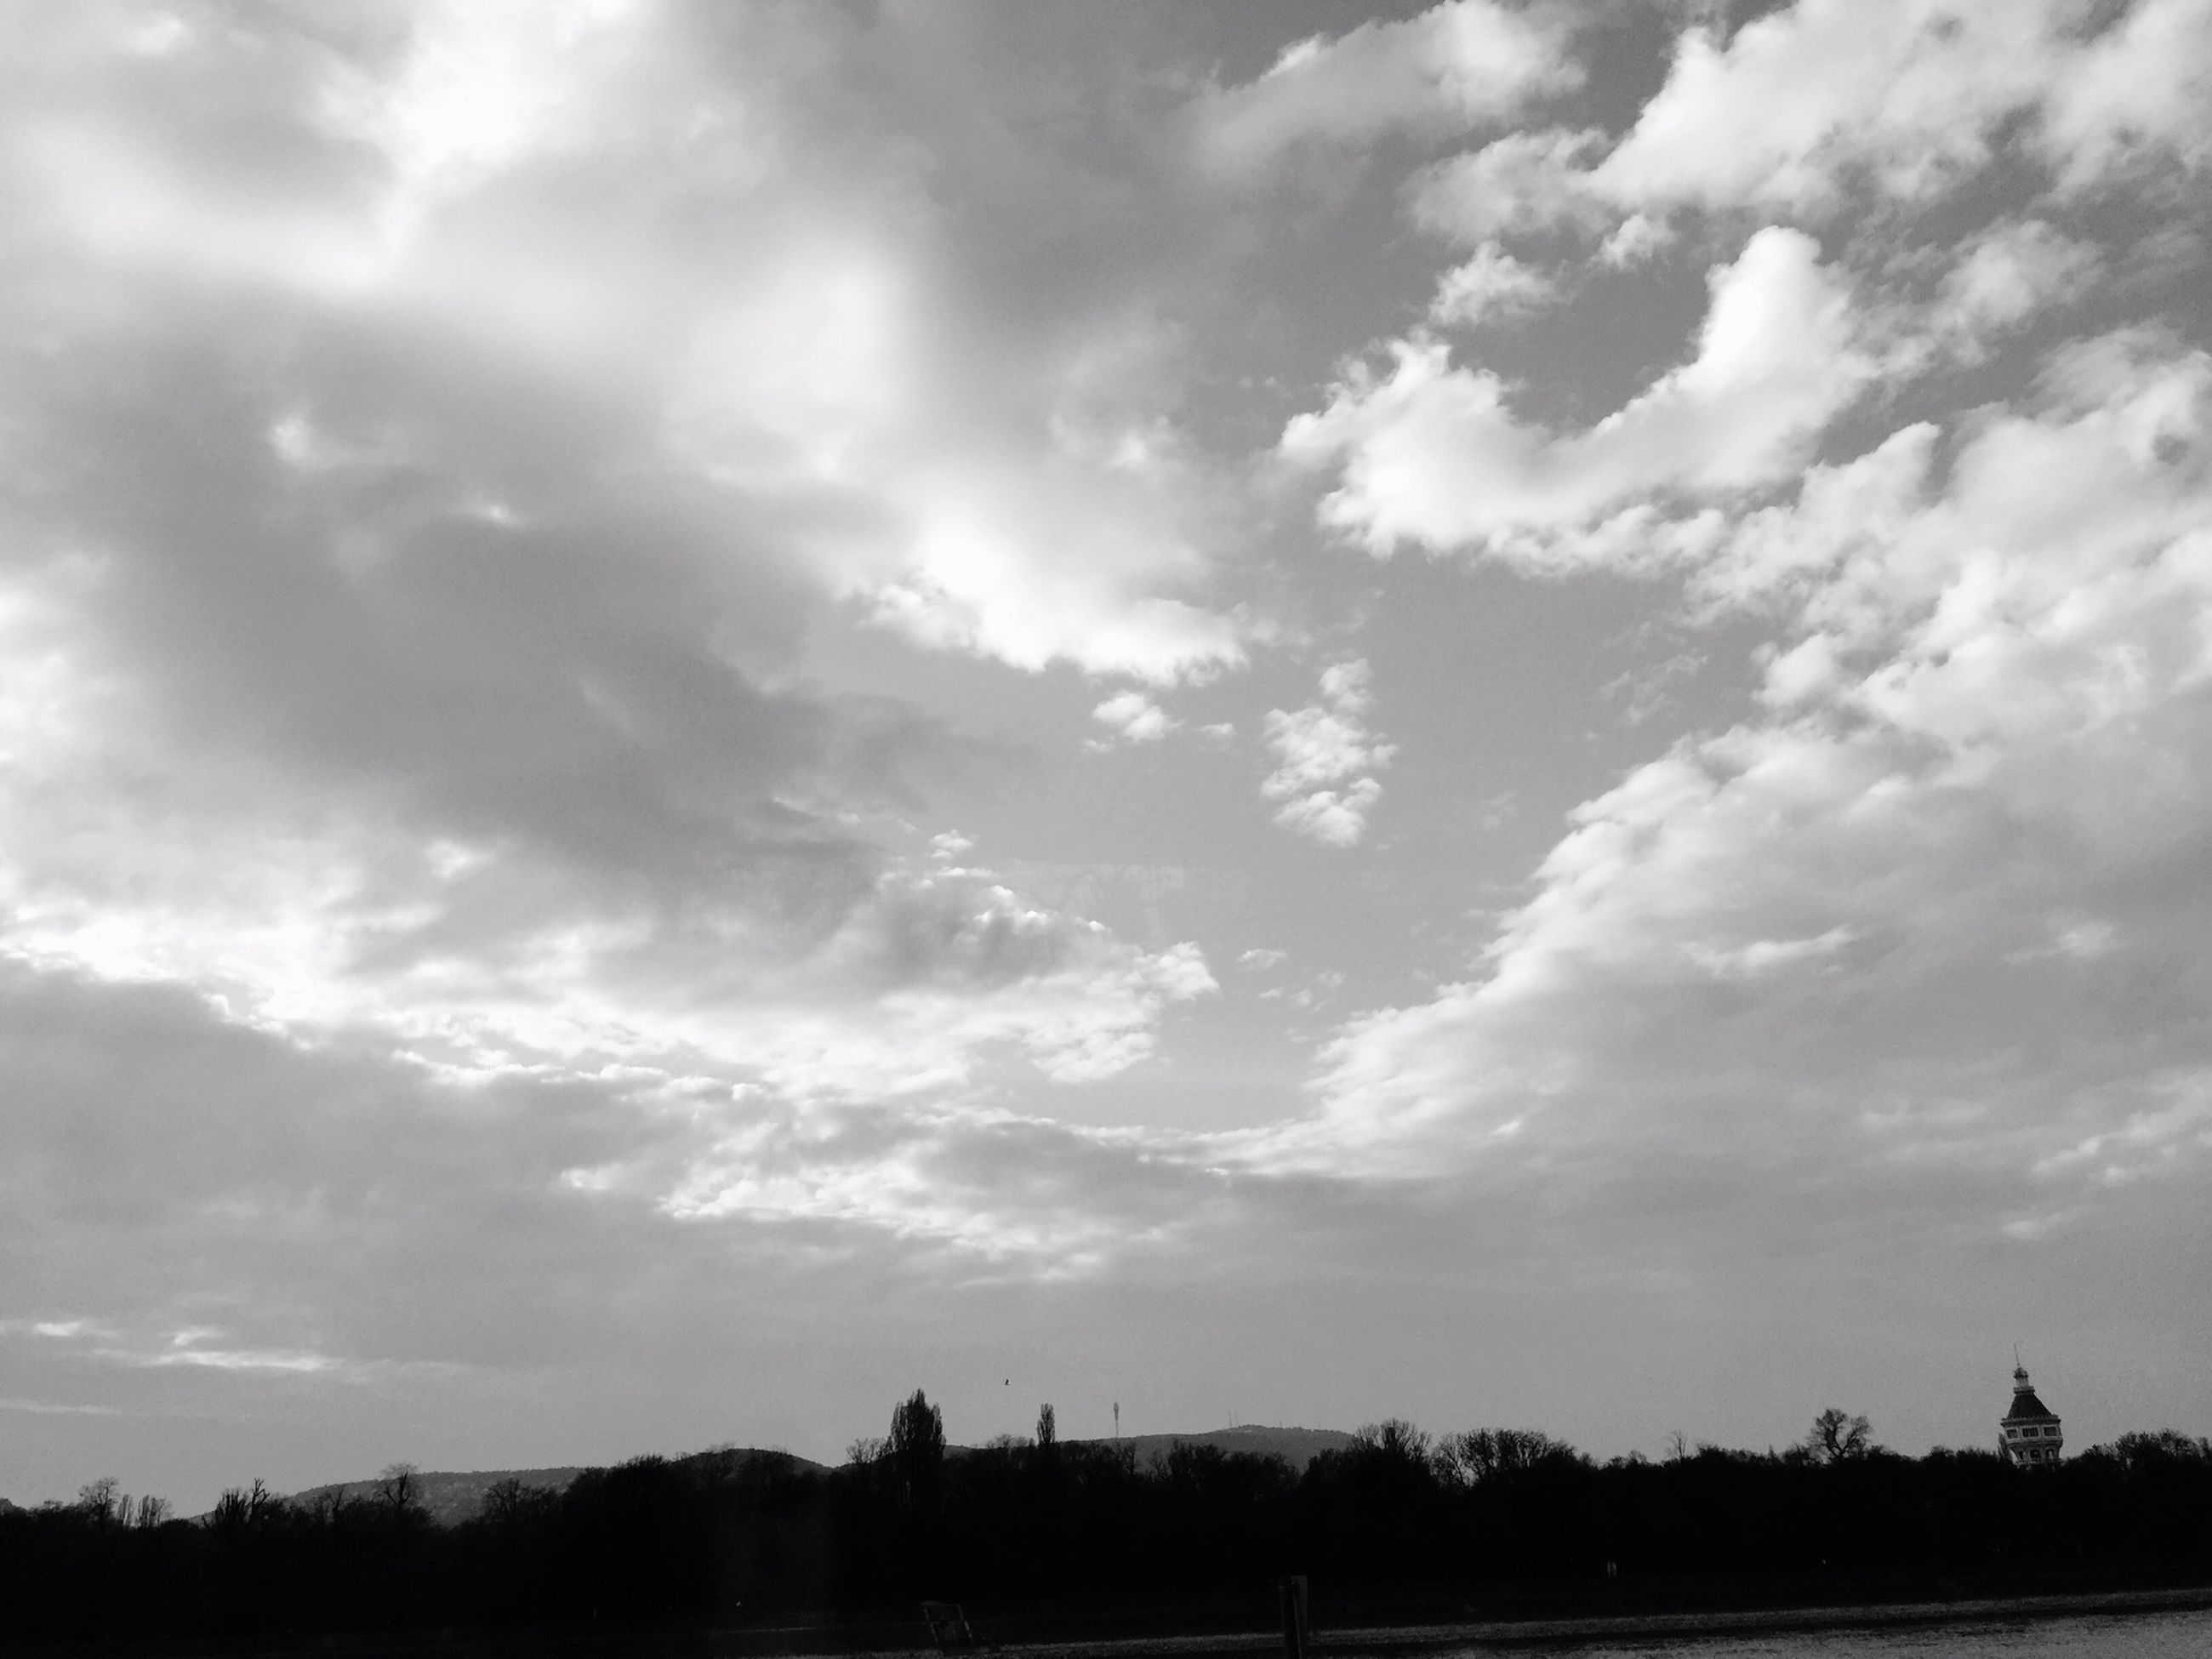 sky, cloud - sky, tranquility, tranquil scene, cloudy, silhouette, landscape, scenics, beauty in nature, field, cloud, nature, tree, outdoors, idyllic, weather, overcast, day, non-urban scene, horizon over land